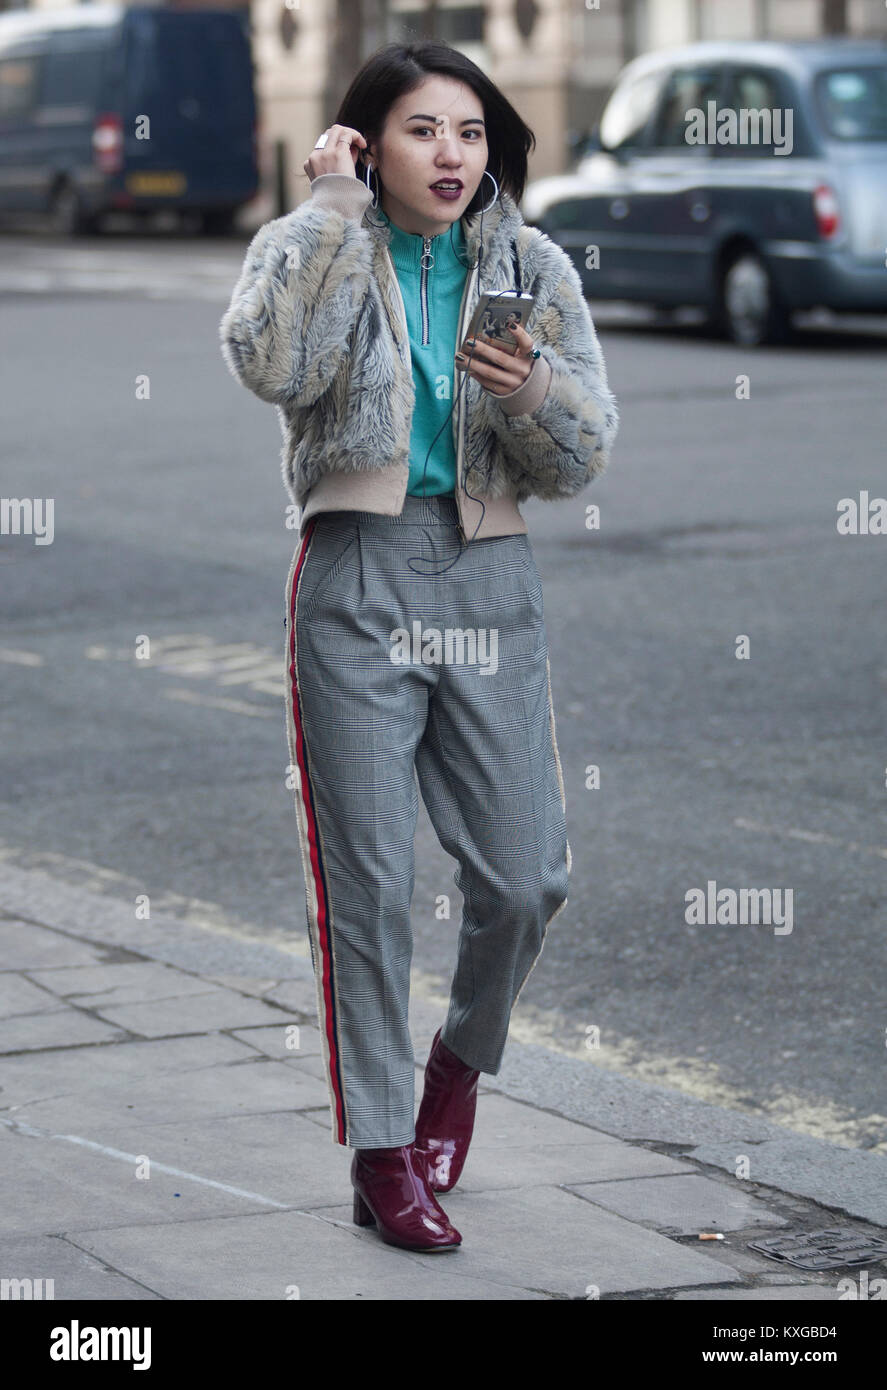 Mens Del Aw Dal Style Week Street 2018 Fashion London Giorno Uno wHIU78q